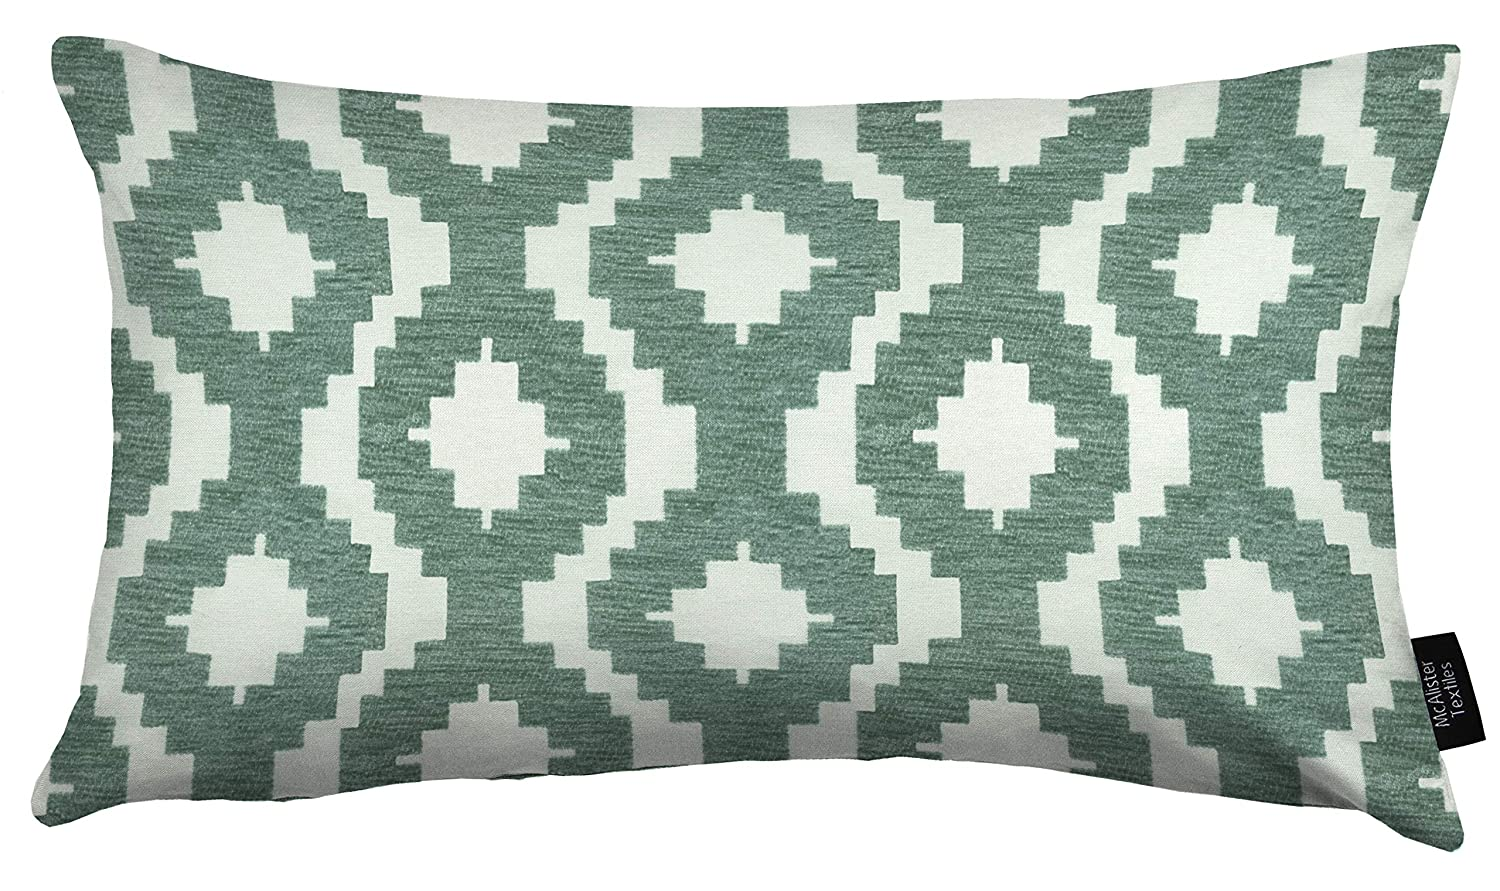 Modern Aztec Accent McAlister Textiles Arizona Square 24x24 Inches Chenille Geometric Pillow Cover Sham in Duck Egg Blue Moroccan Decor Plush Decorative Throw Cushion Sham